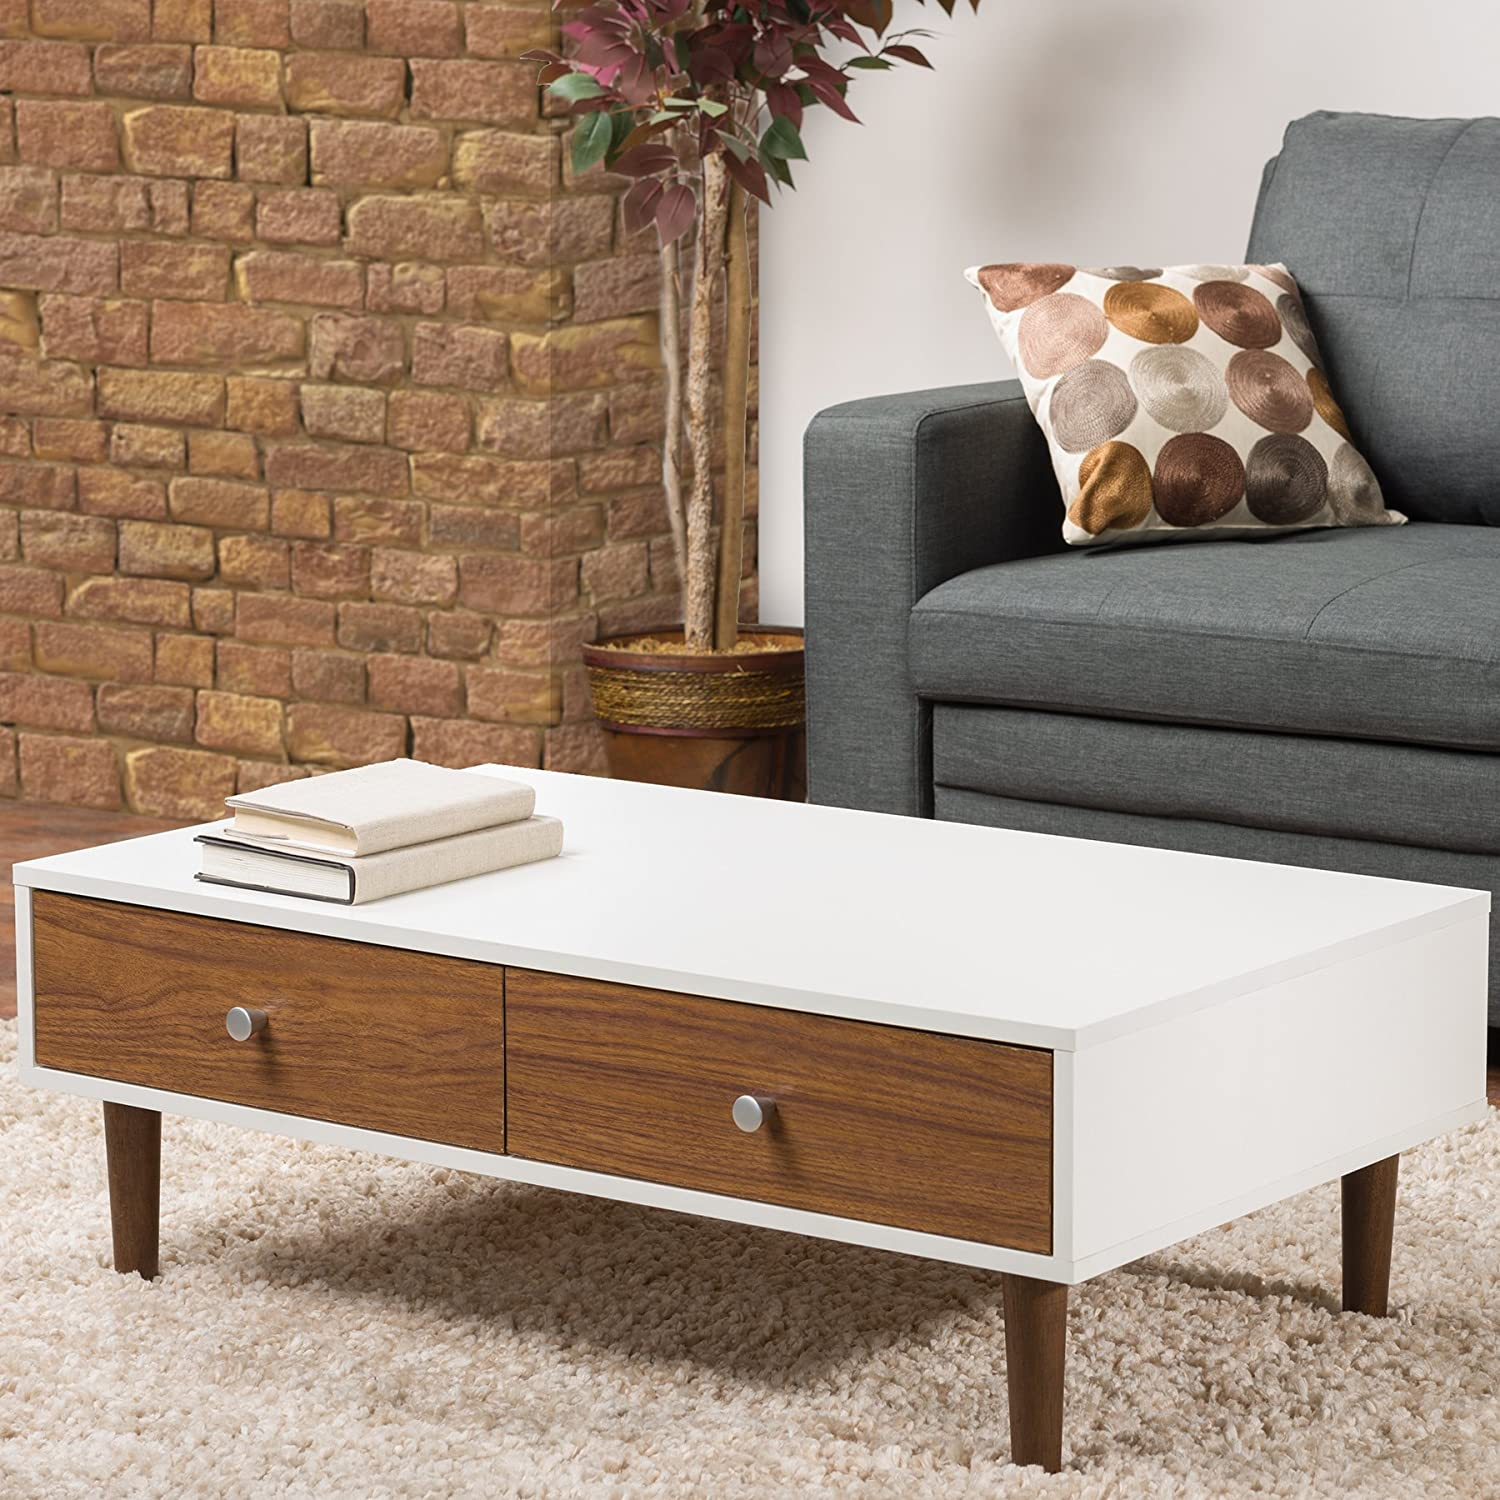 Amazon baxton studio gemini wood contemporary coffee table amazon baxton studio gemini wood contemporary coffee table white kitchen dining geotapseo Choice Image